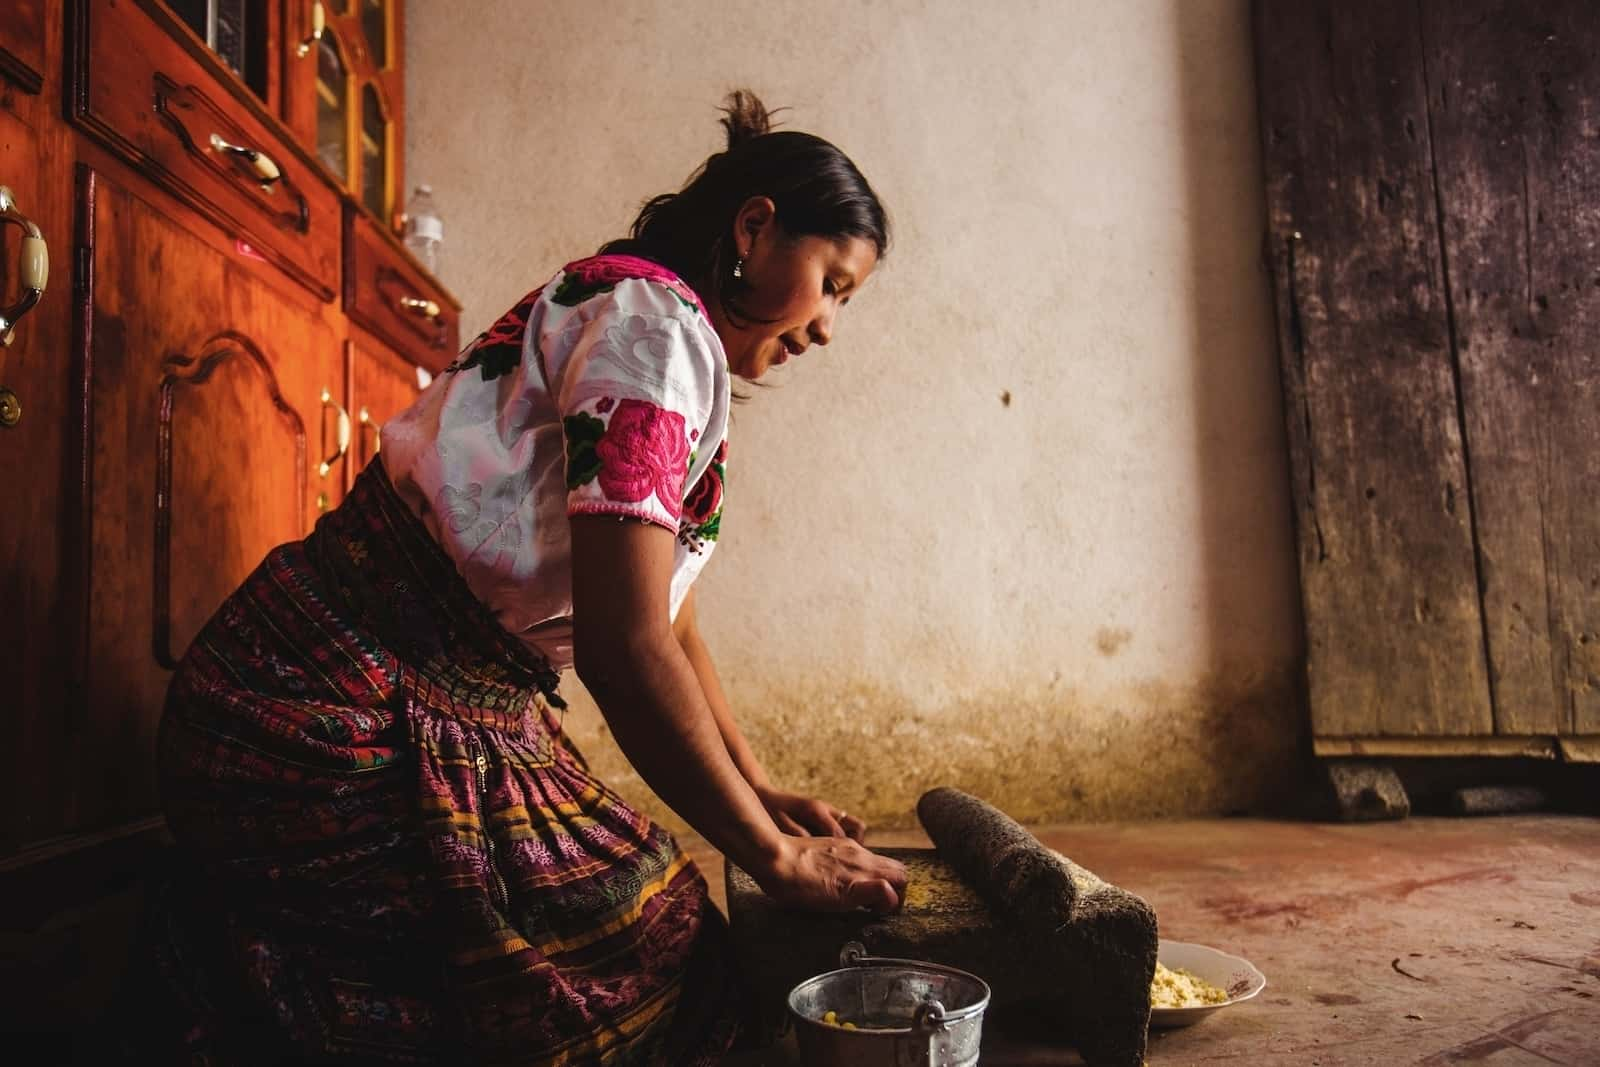 A woman wearing a colorful skirt with a pink and white shirt kneels in a room, grinding corn on a stone.